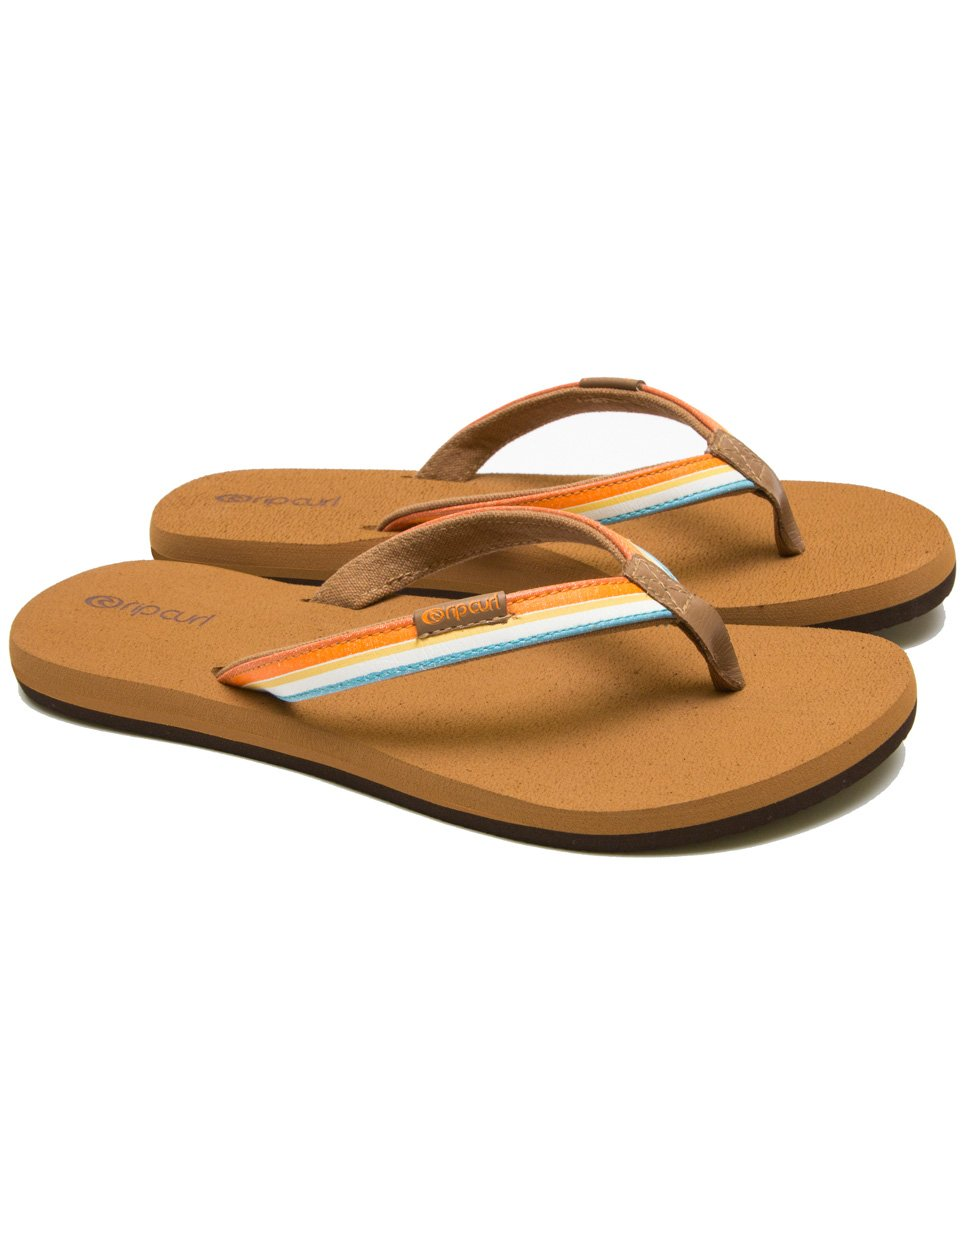 Rip Curl Freedom Sandals Multi